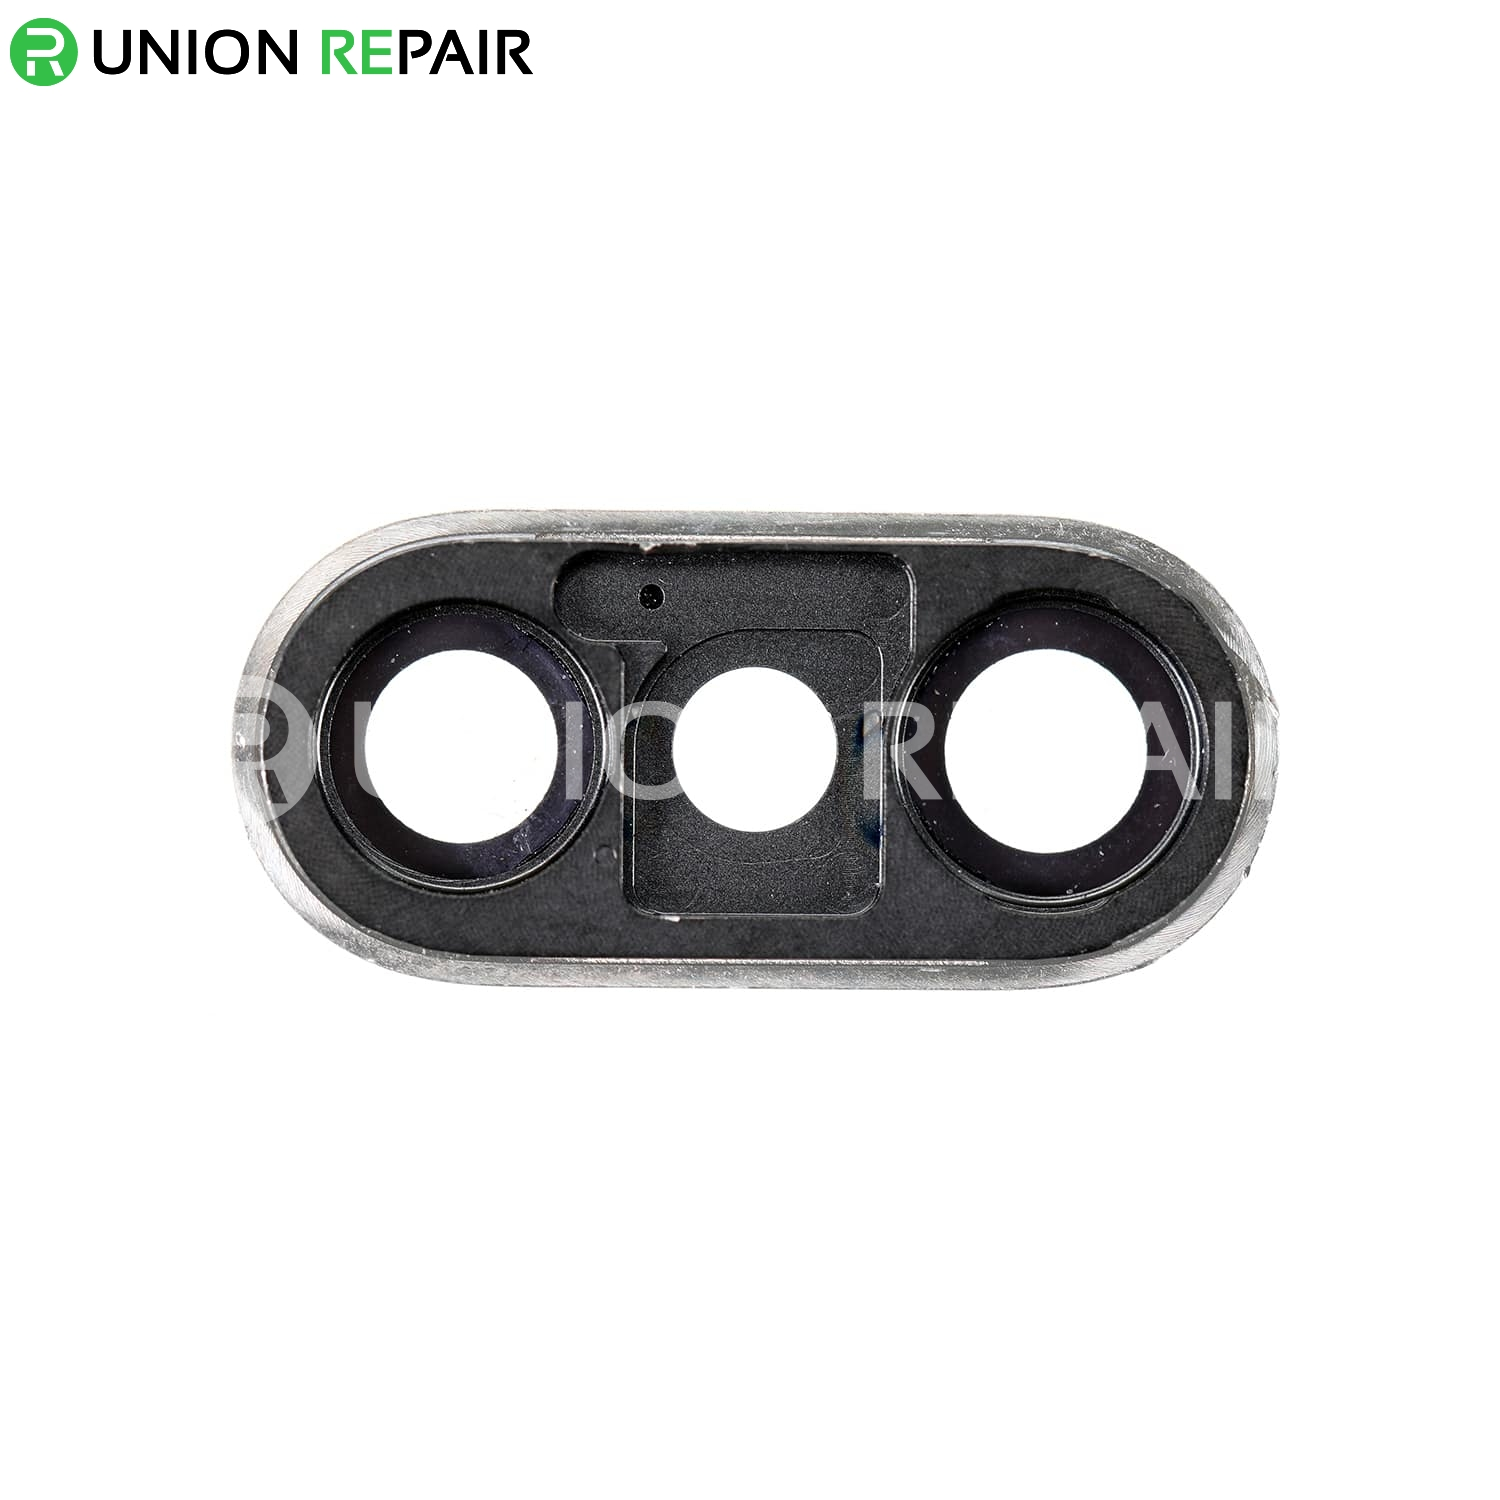 Replacement for iPhone Xs/Xs Max Rear Facing Camera Lens with Bezel - Silver